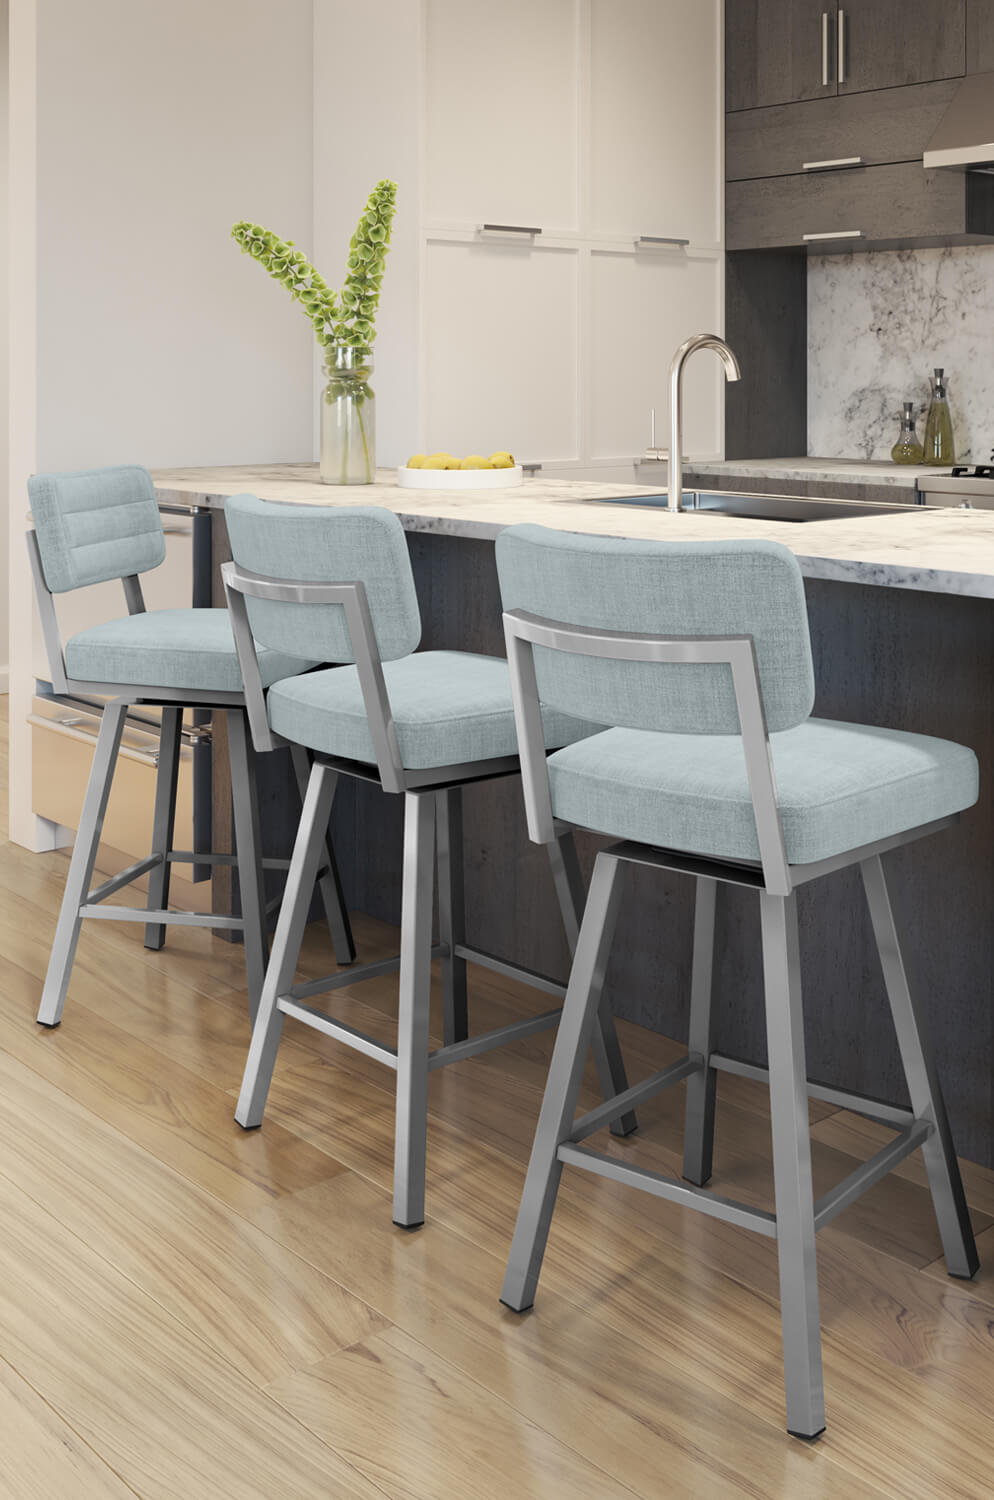 Buy Amisco S Phoebe Urban Upholstered Swivel Bar Stool